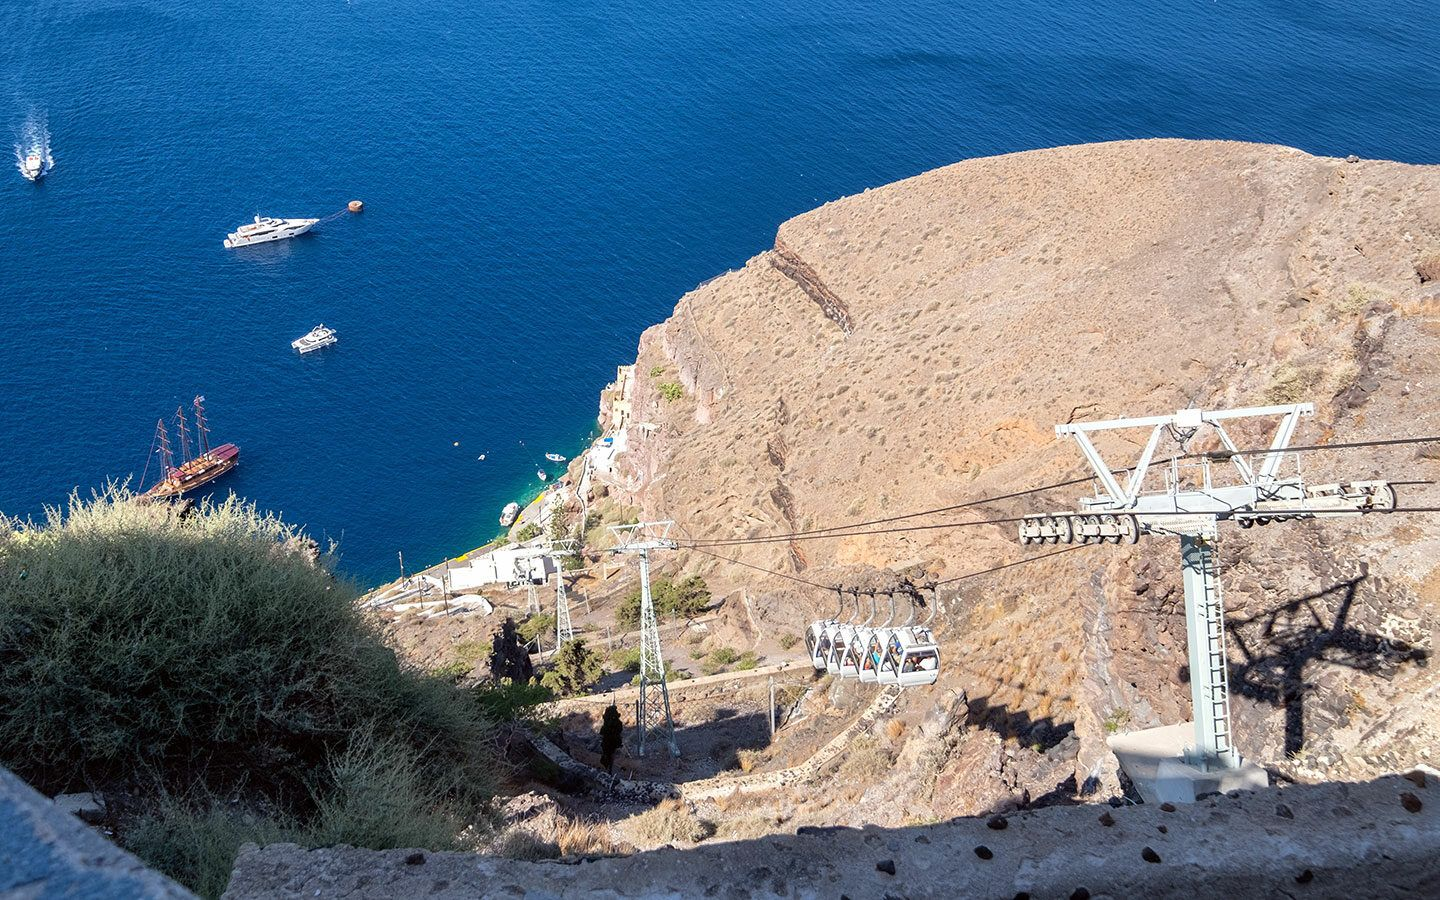 The cable car from Fira to the old port in Santorini